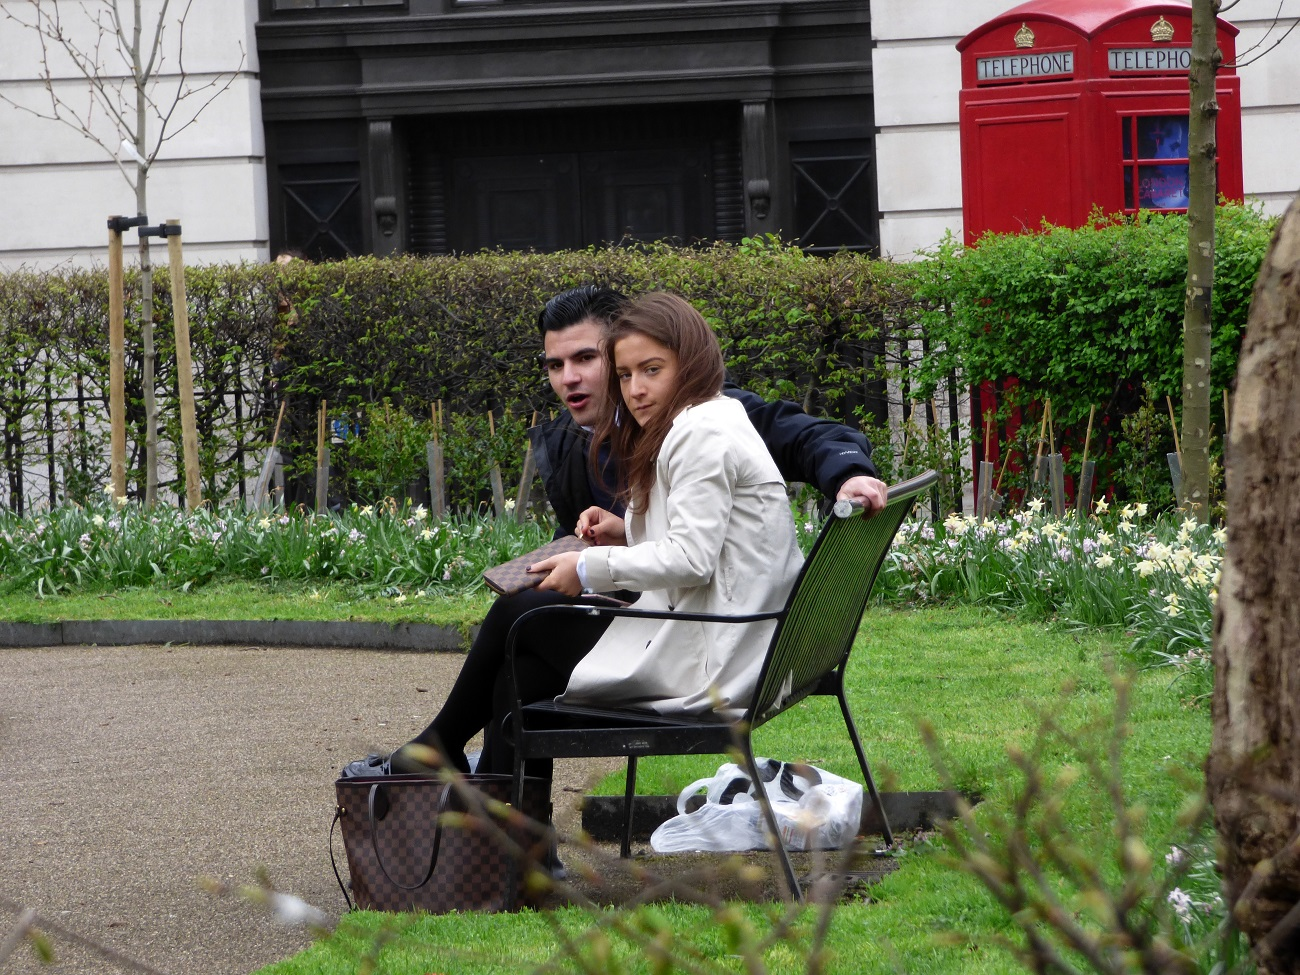 20170323_Camden_Bloomsbury-Square-Gardens_Oy-what-you-looking-at